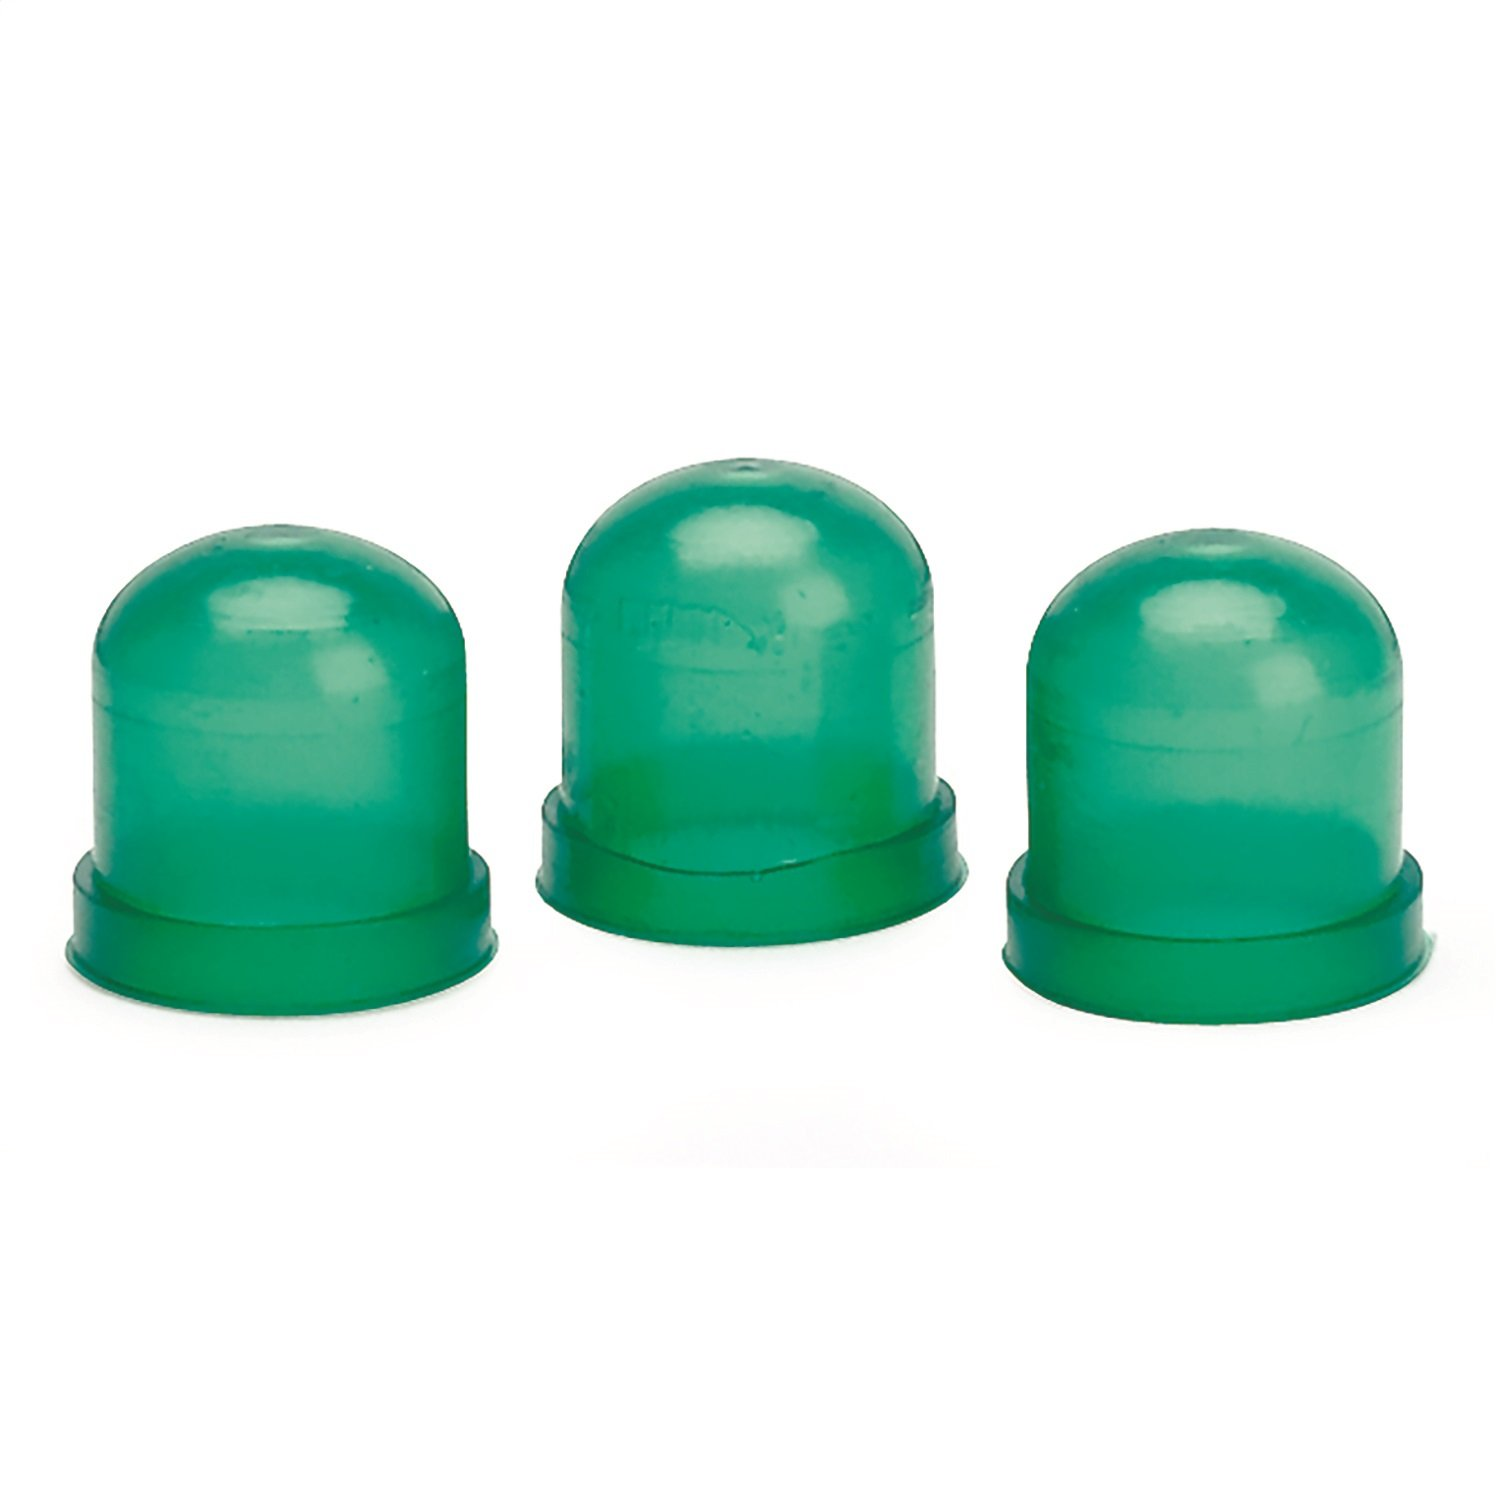 Auto Meter 3215 Green Light Bulb Cover-Pack of 3